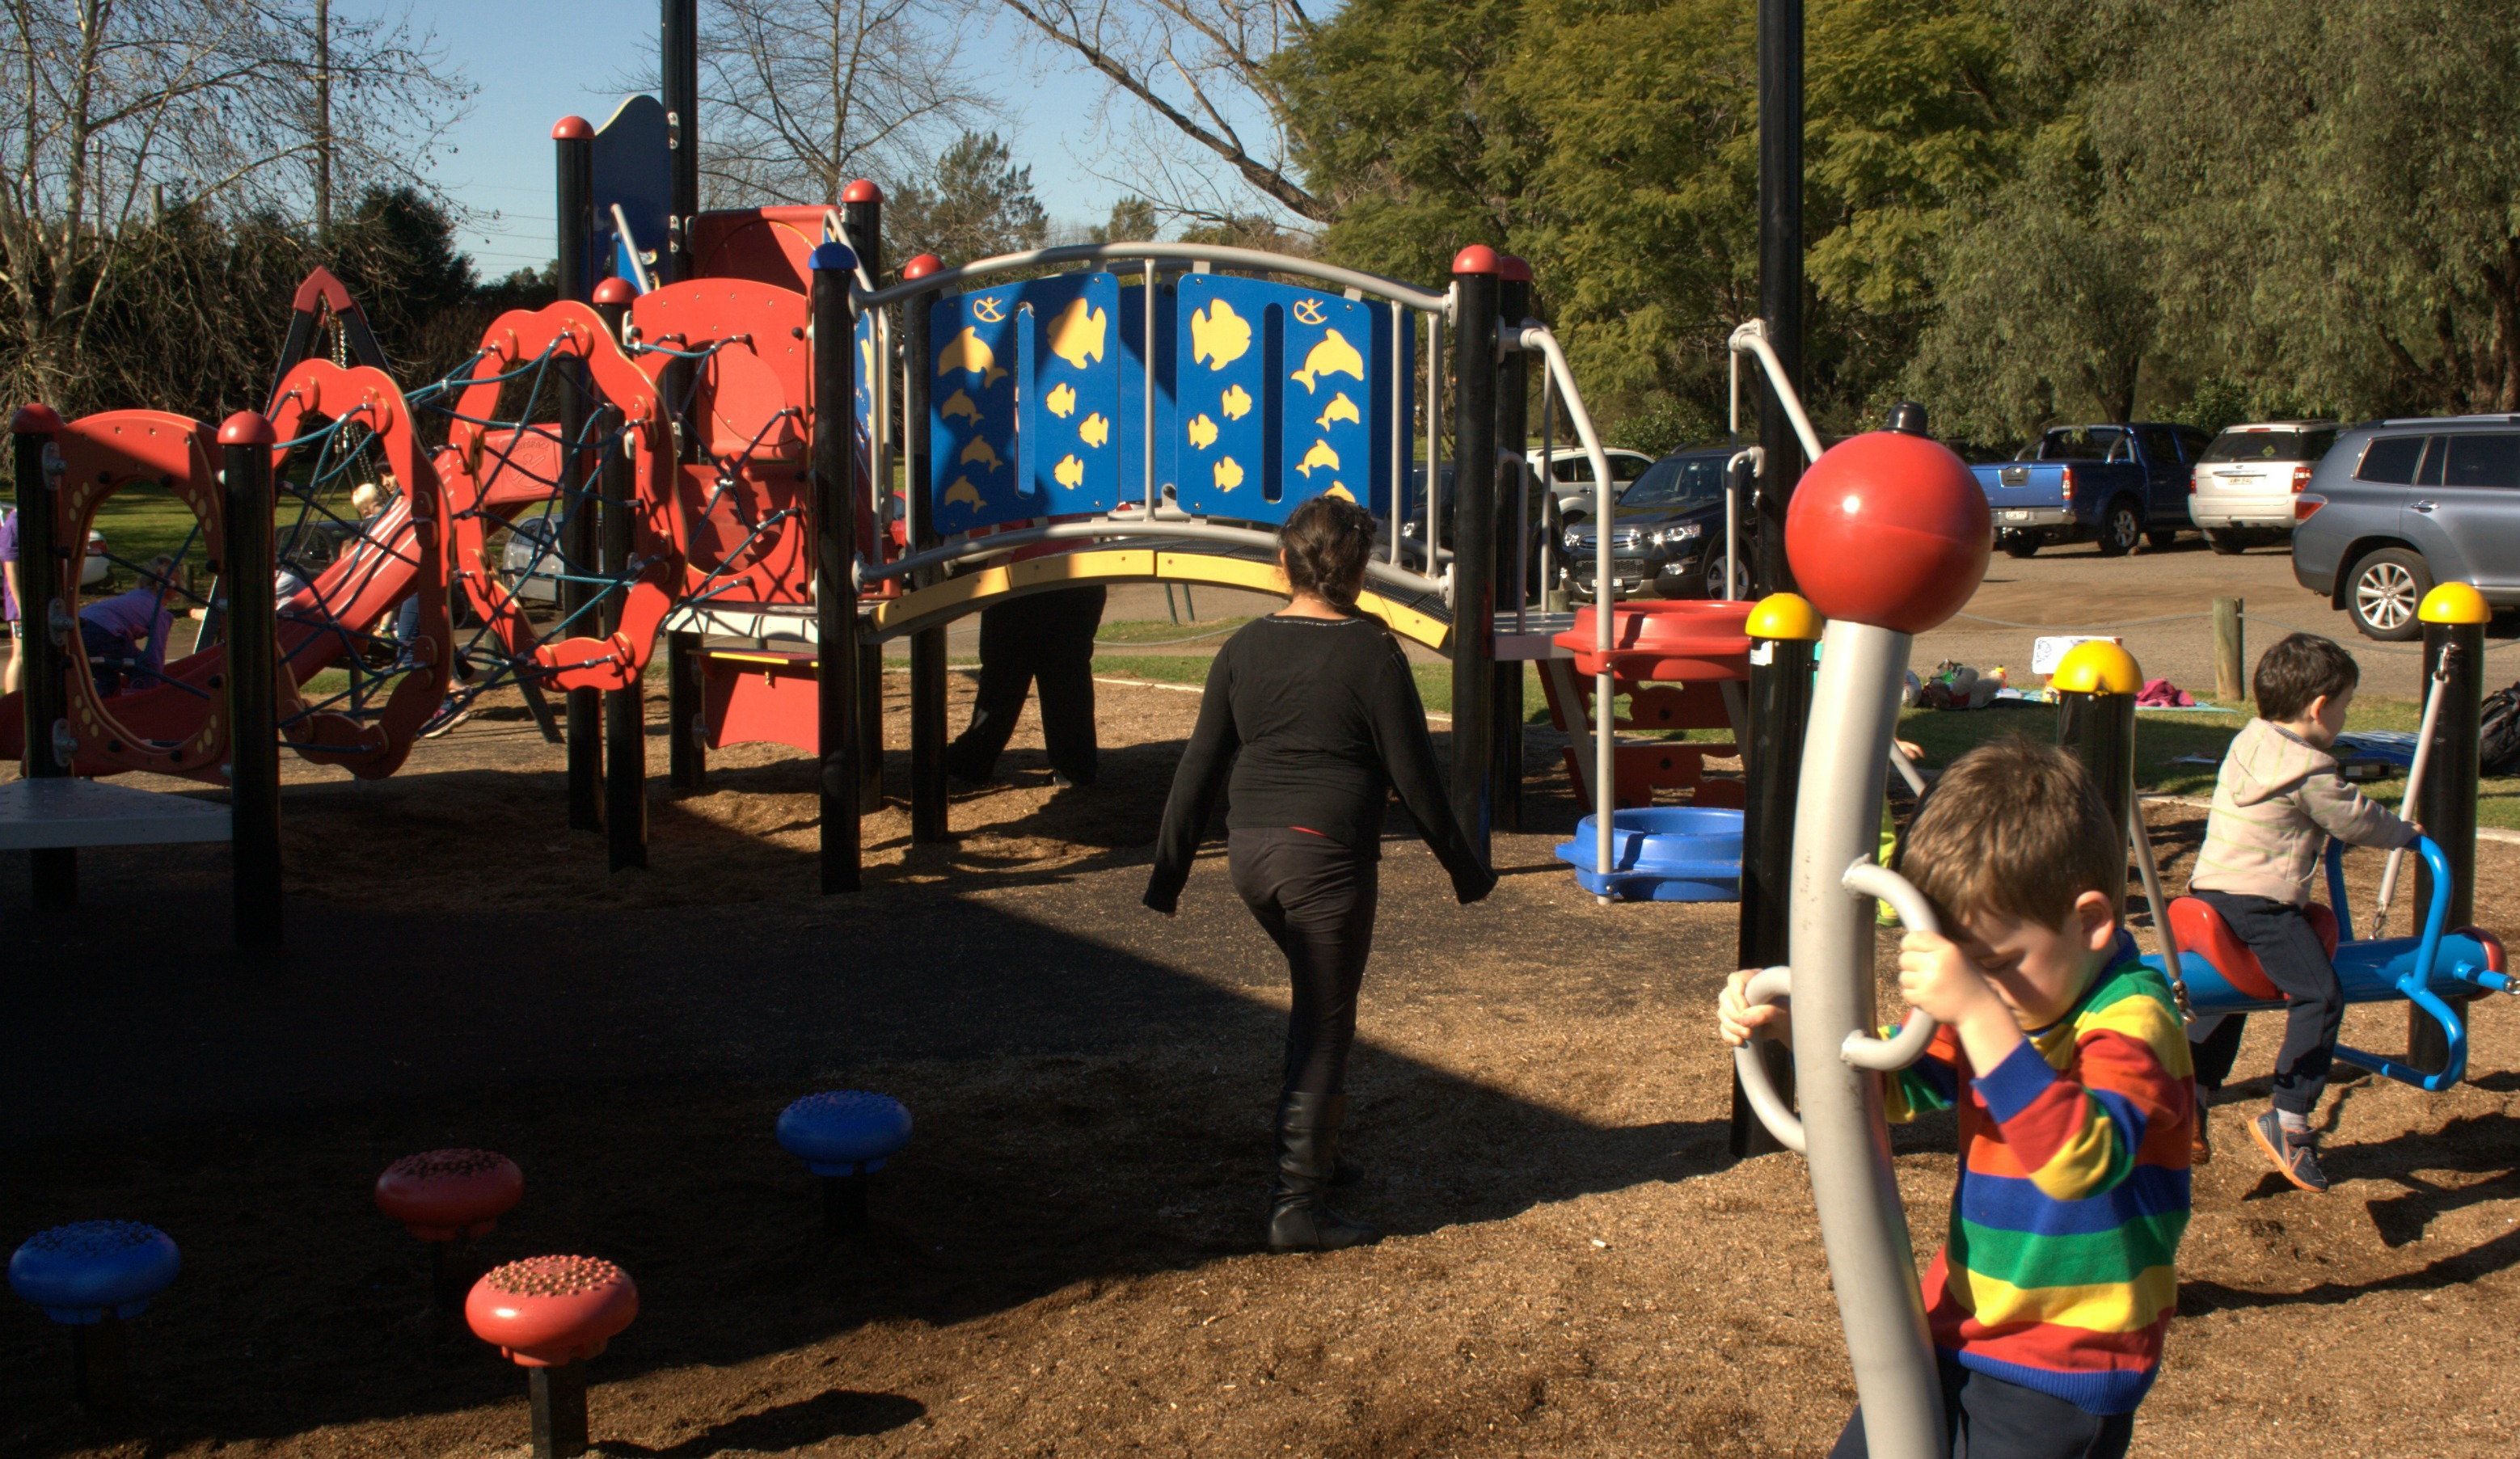 Macquarie Park Windsor Large Image The Playground